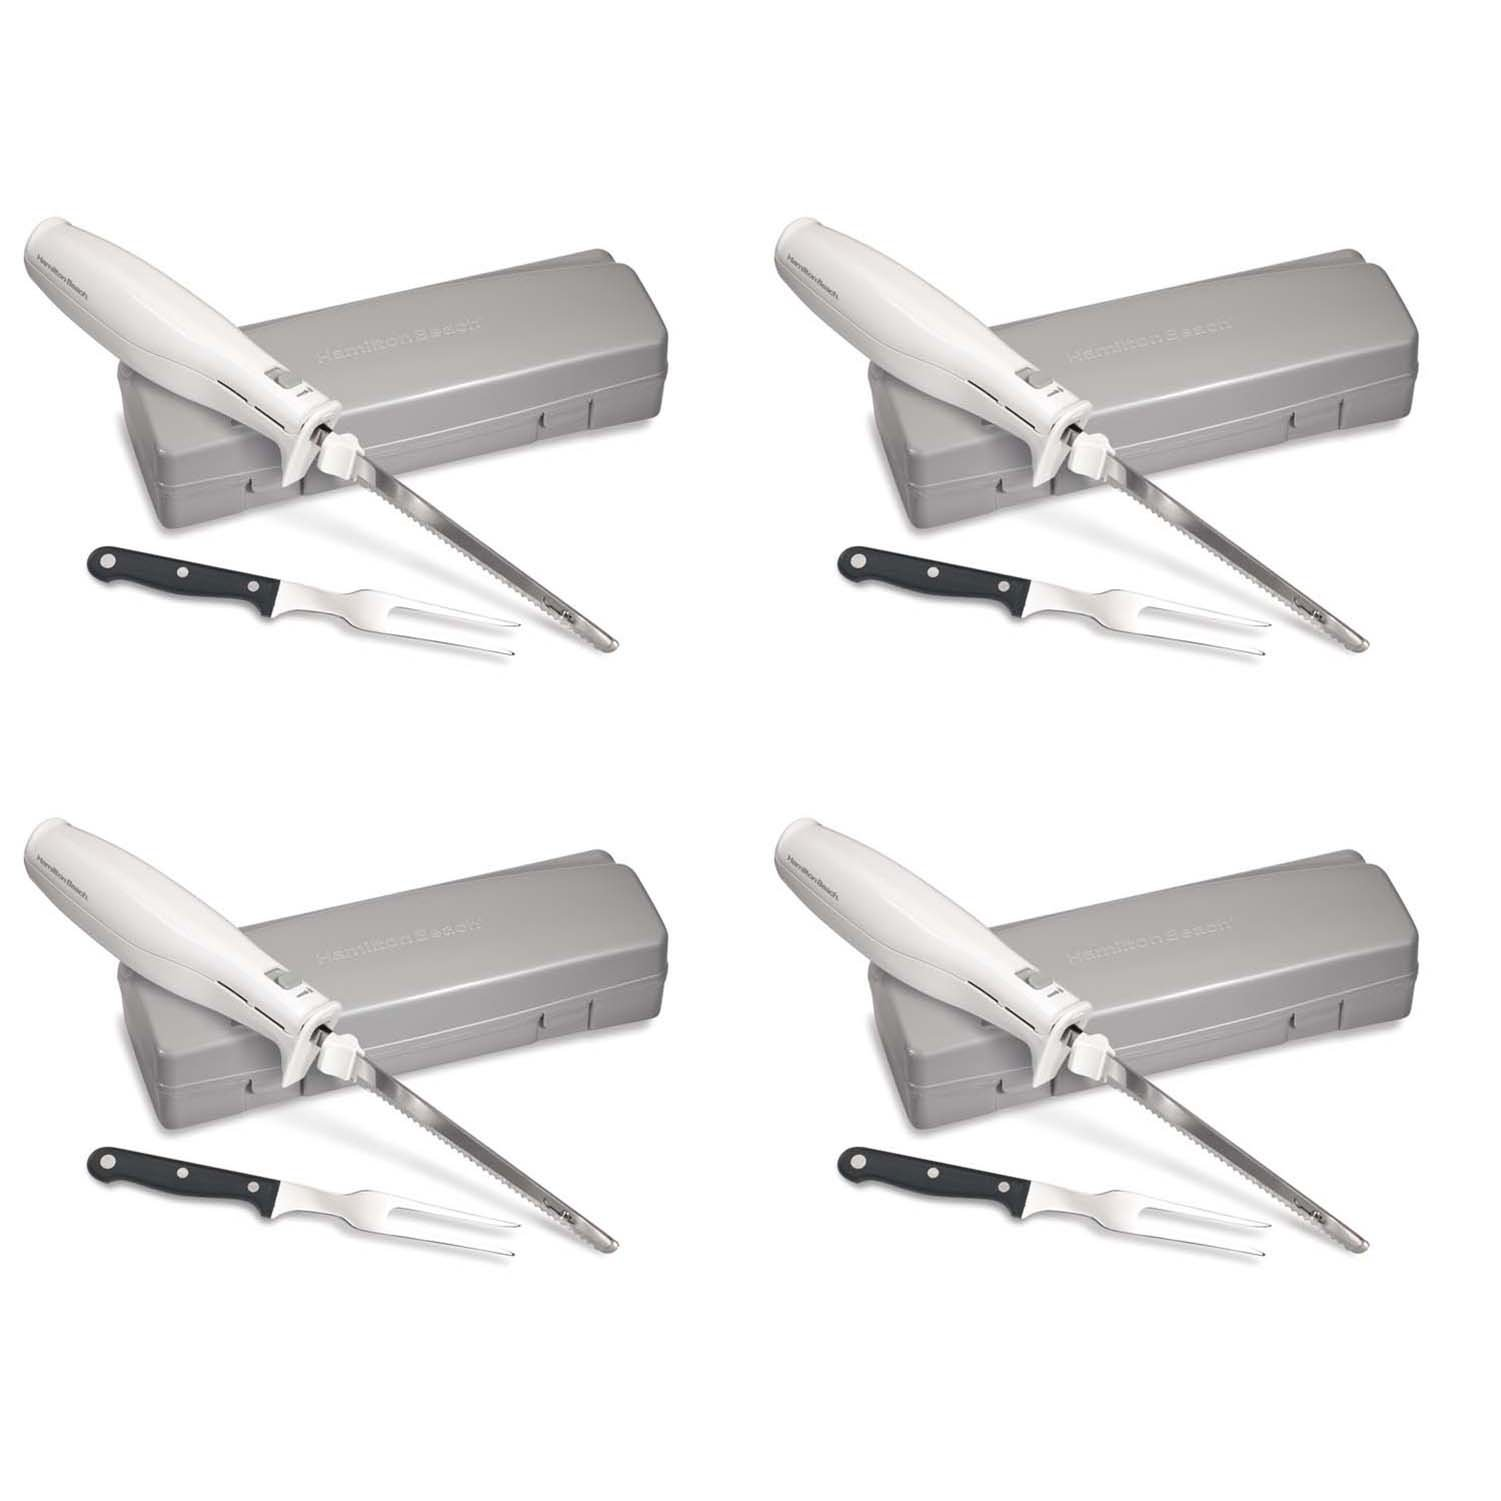 Hamilton Beach 74250 Carve 'n Set Electric Knife with Case (4 Pack)